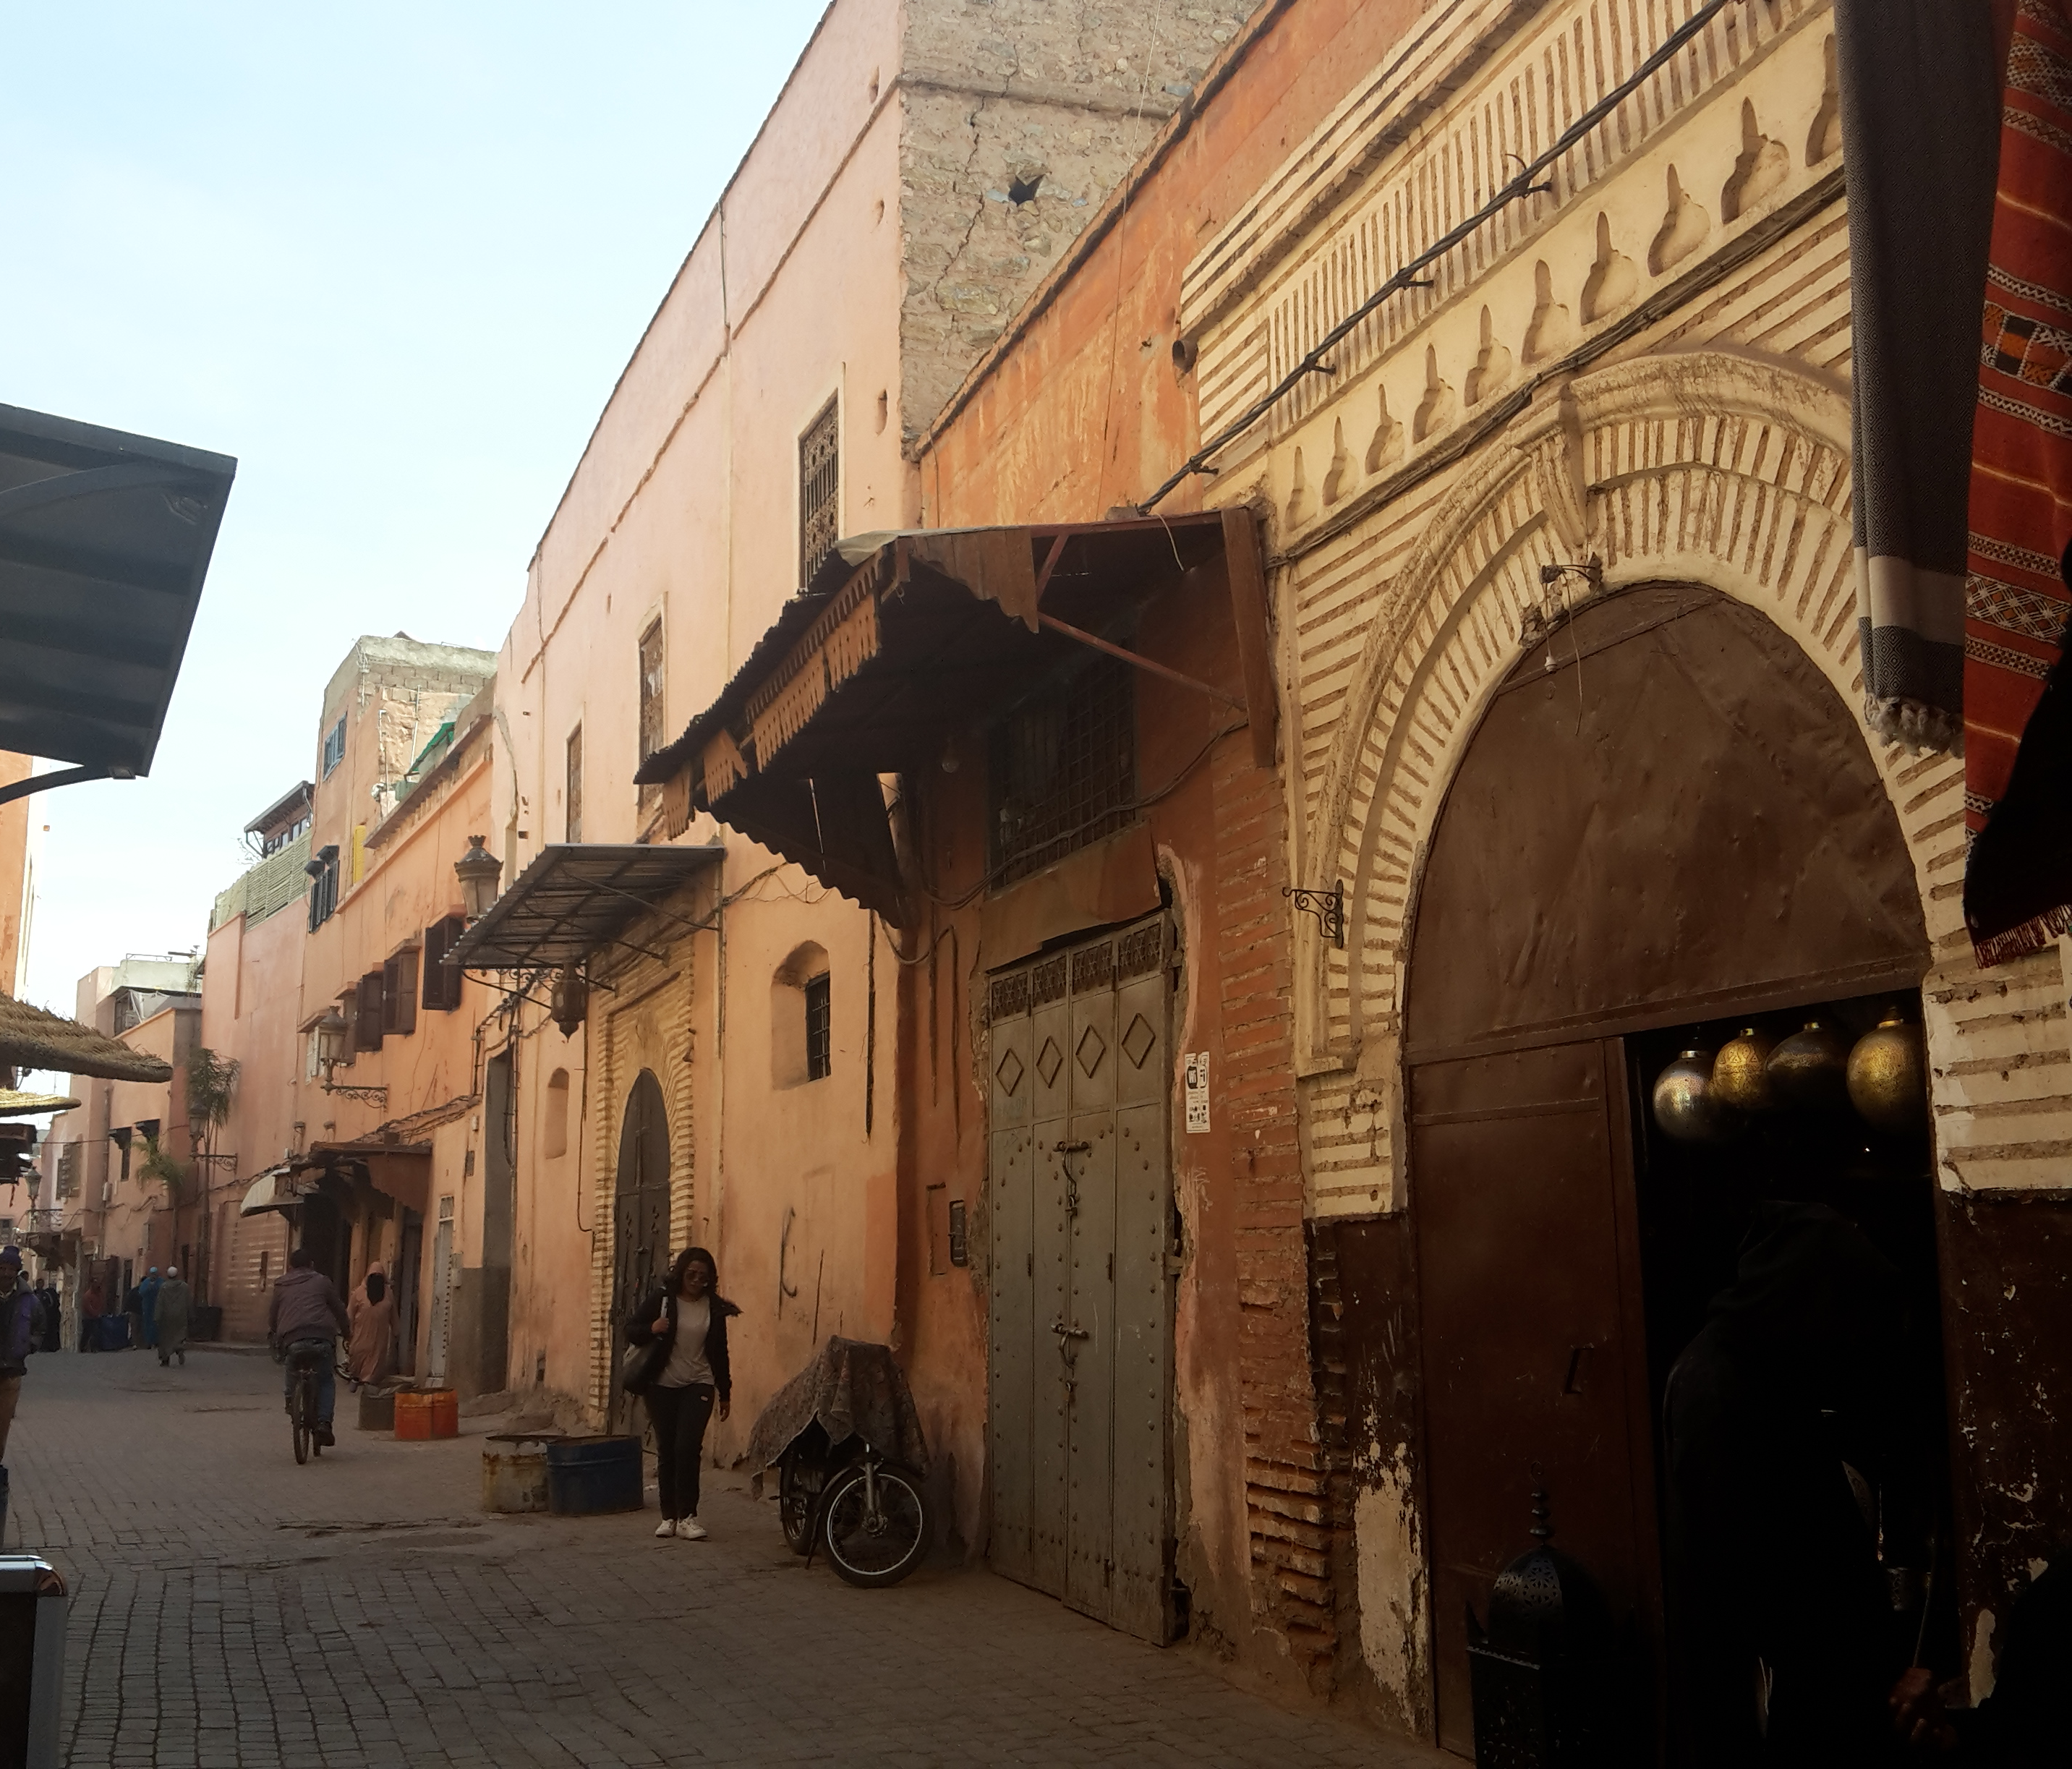 Getting Lost in the the Medina of Marrakech